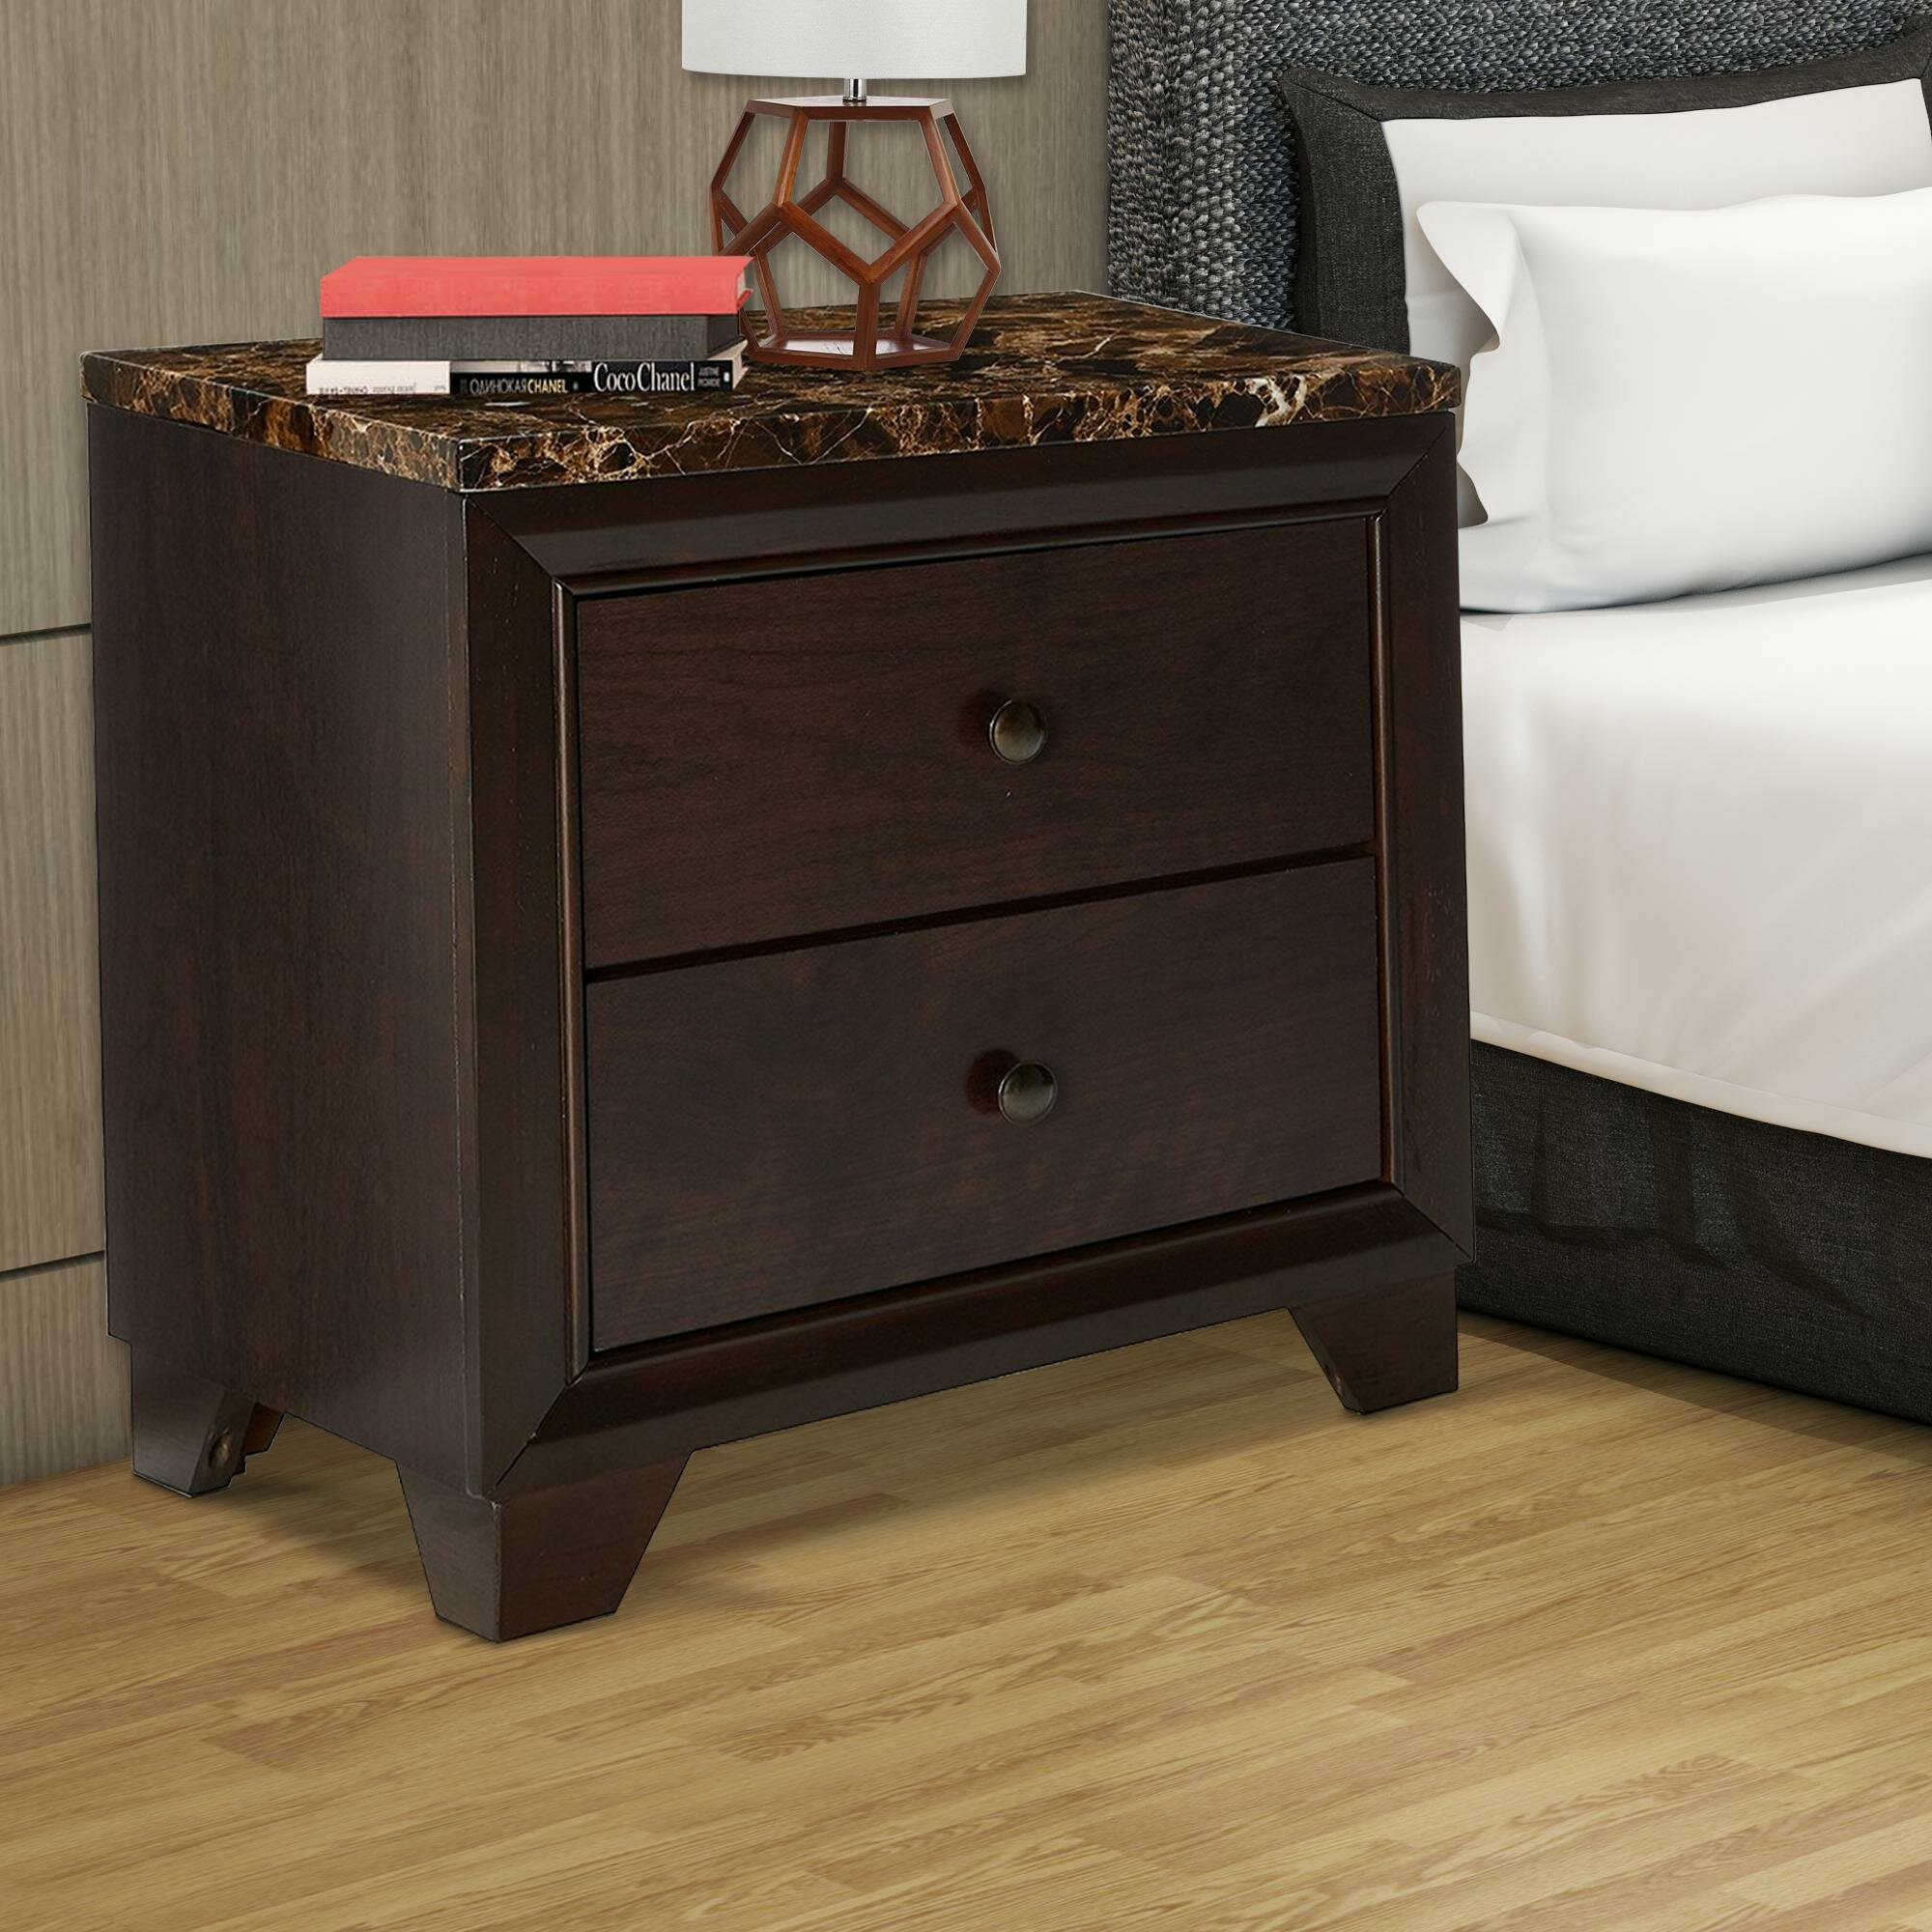 Hawkesbury Faux Marble Top Wooden